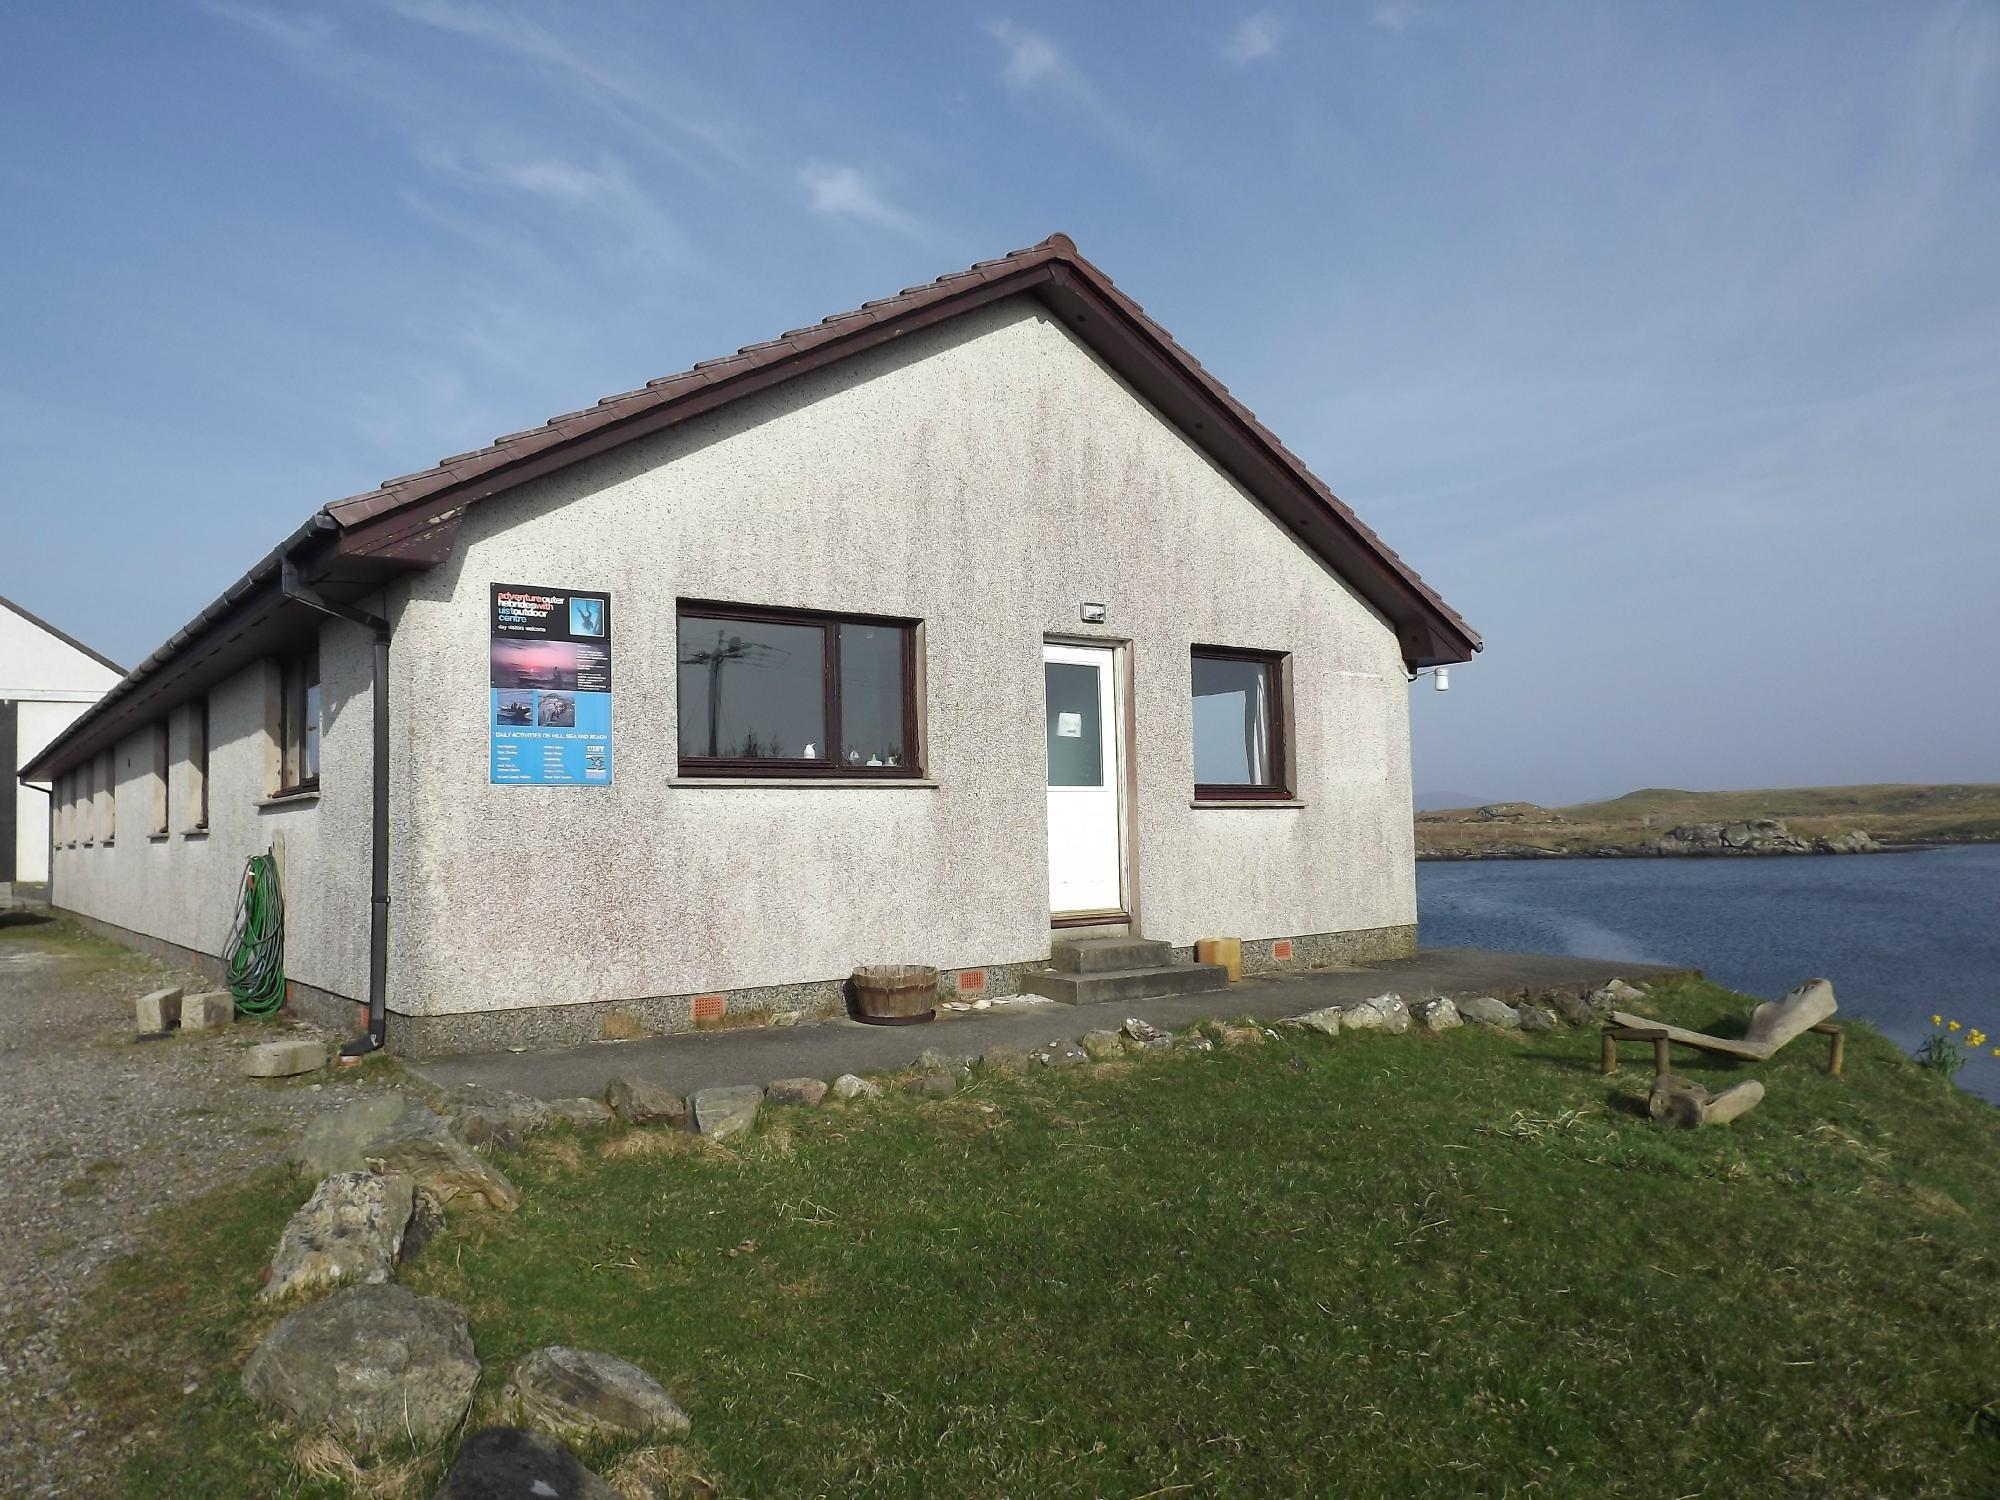 Uist Outdoor Centre Hostel